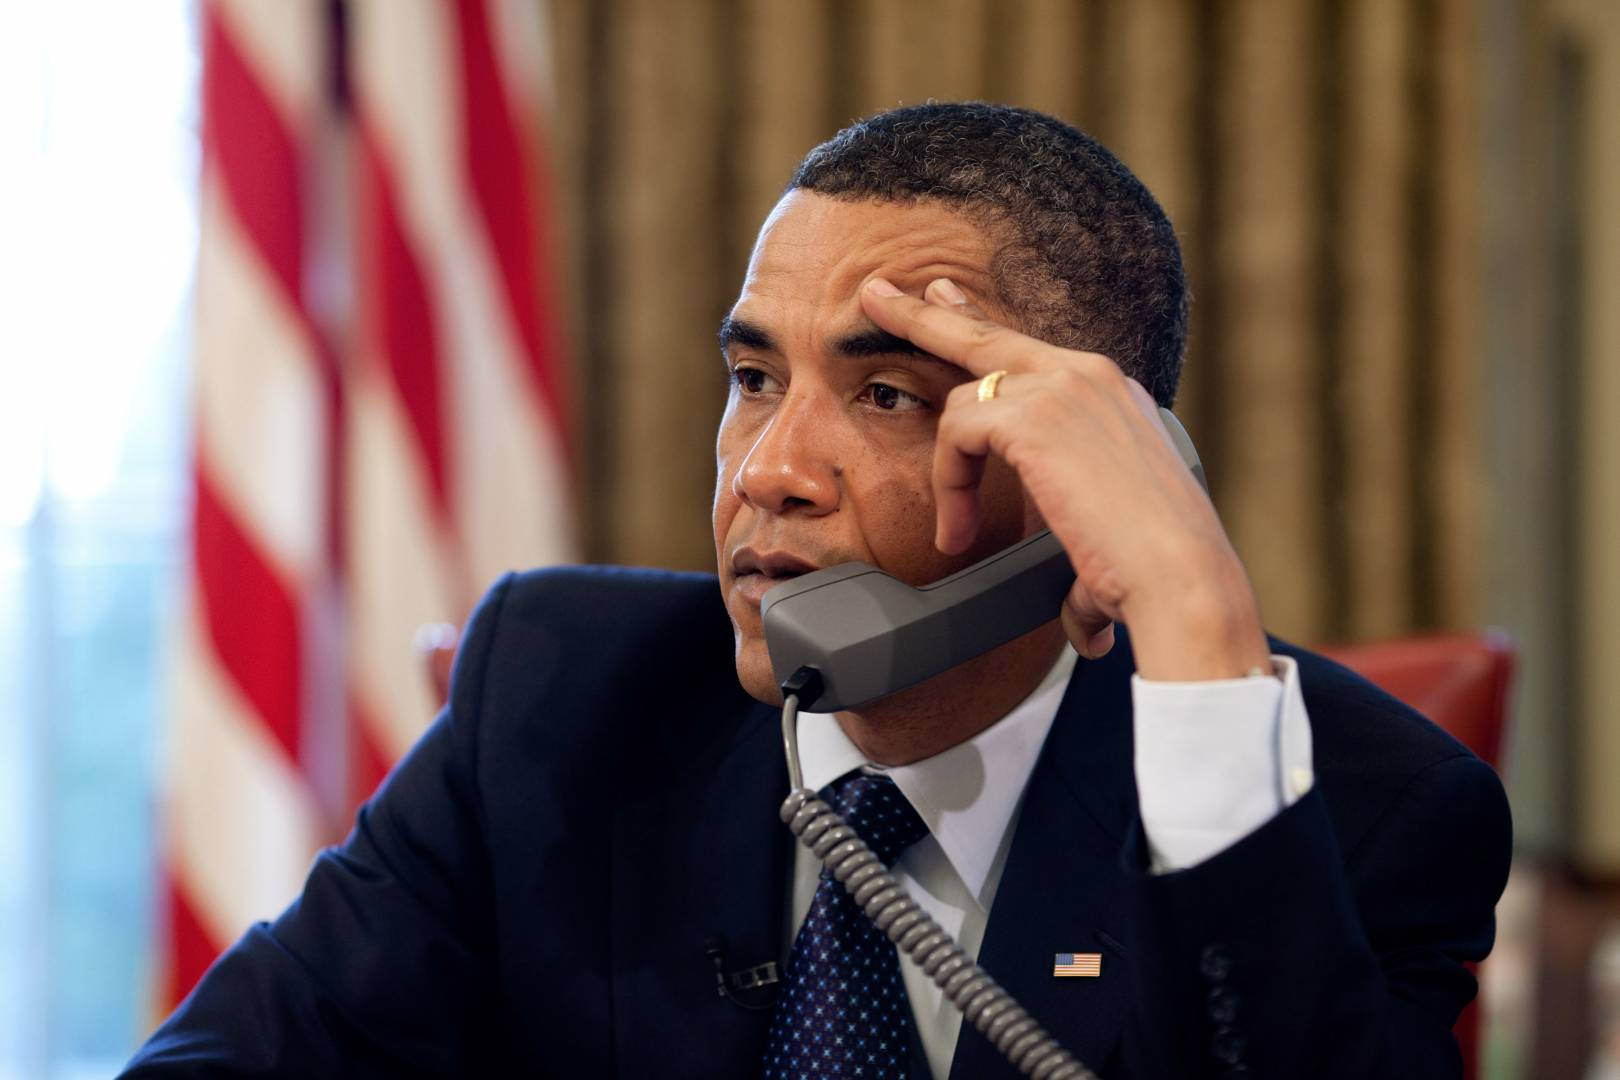 US President Barack Obama receiving bad news in the Oval Office